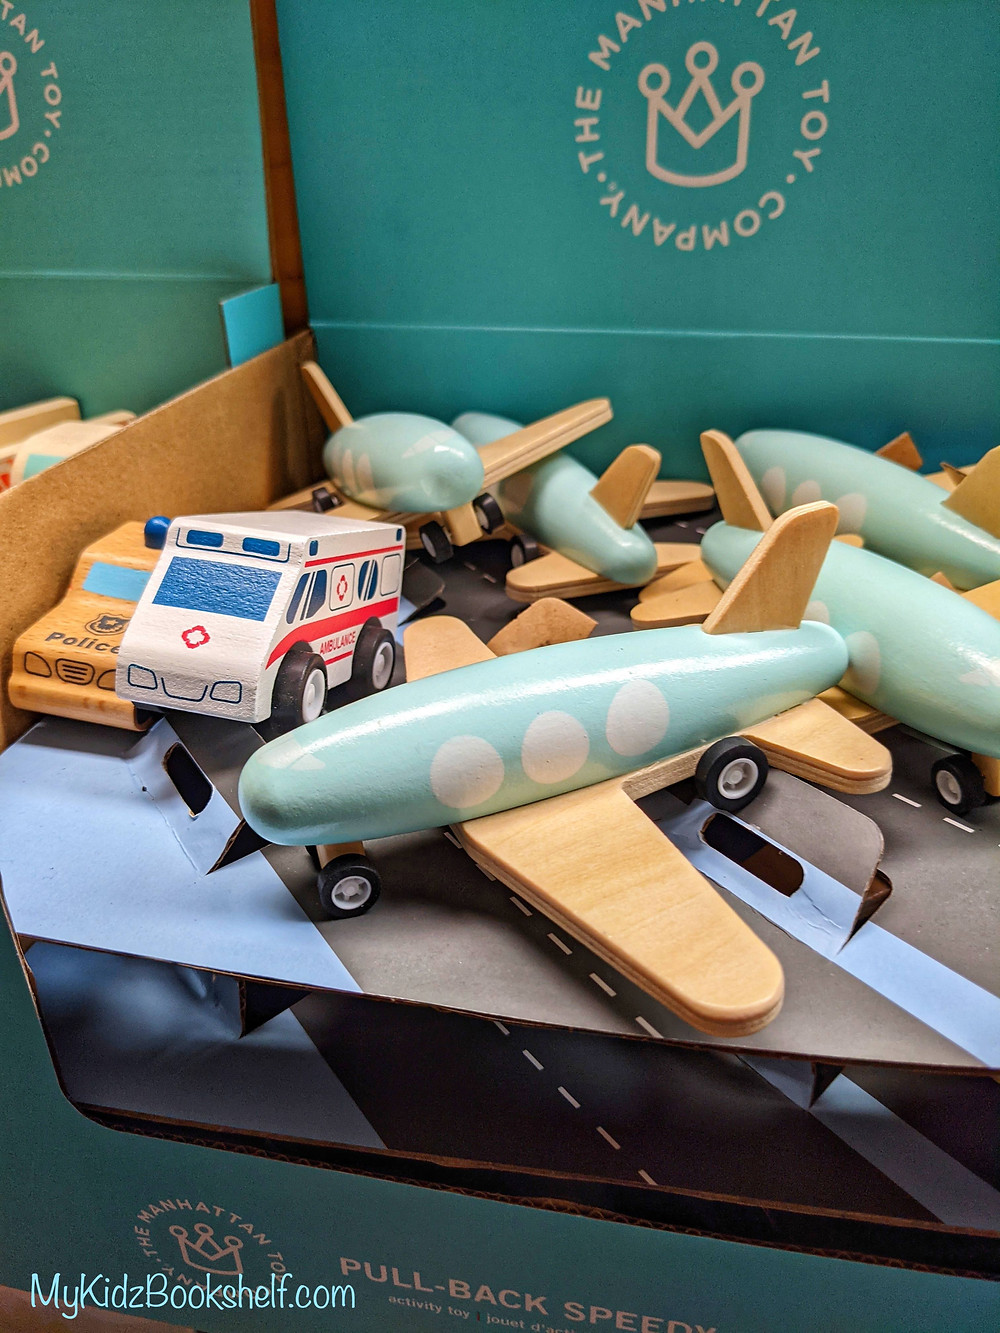 The Manhattan Toy Company Speedy Plane pull back wood toy